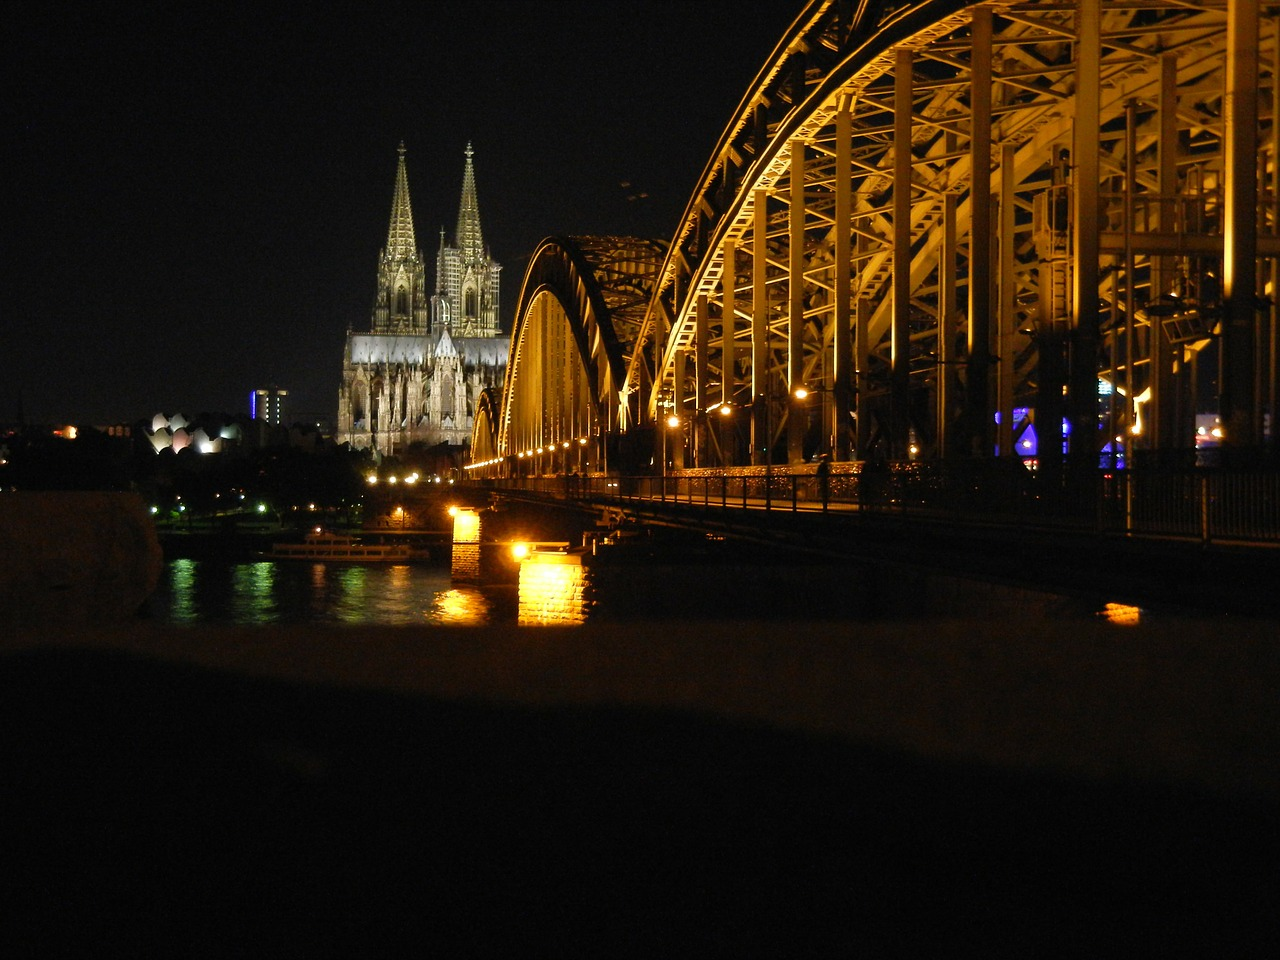 cologne dom deutzer free photo